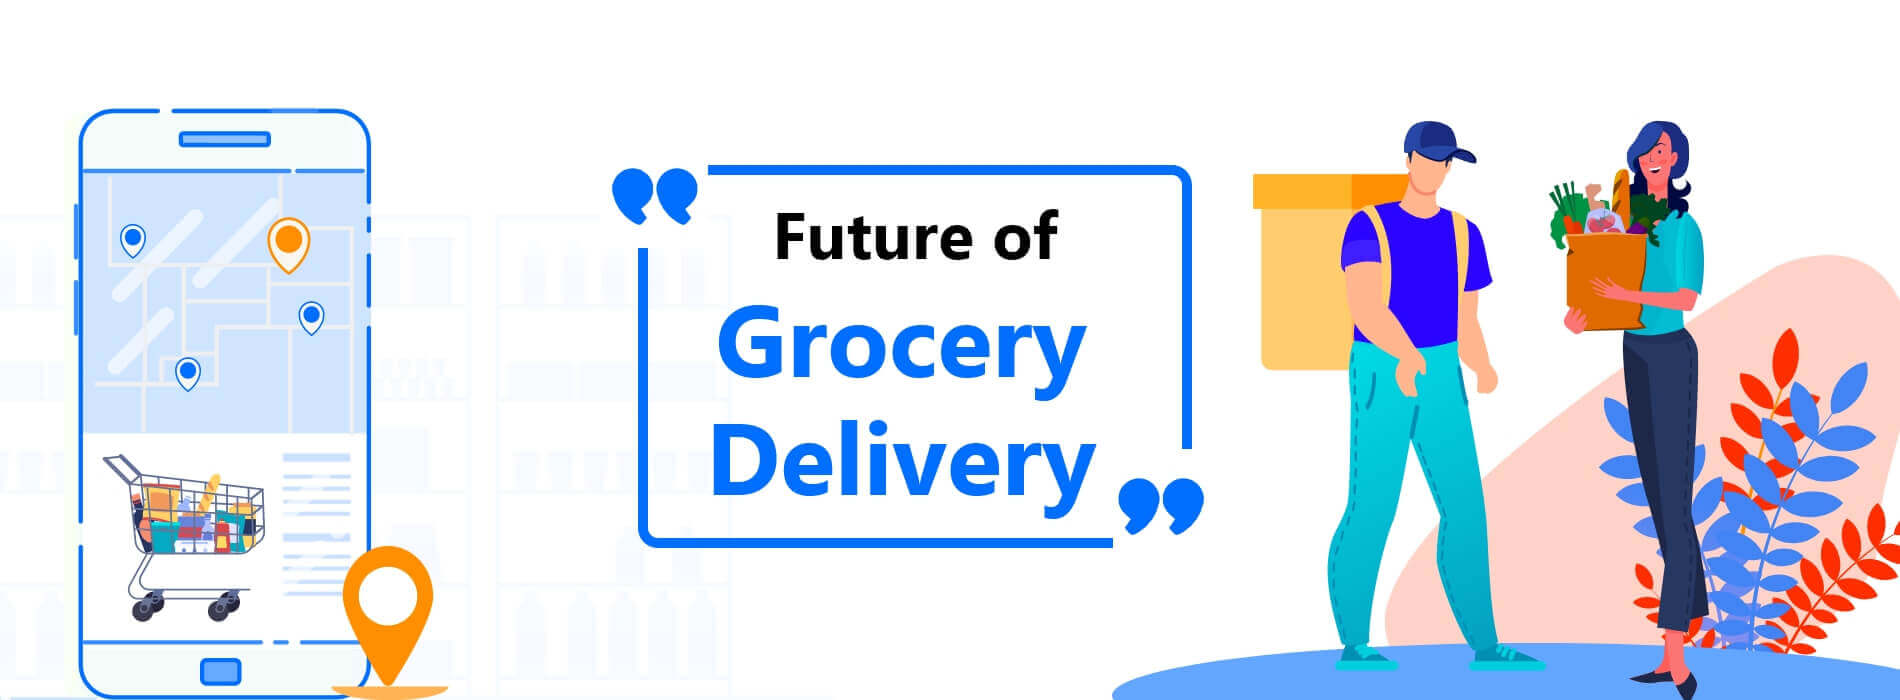 Meet the Retail 4.0: The Future of Grocery Delivery in 2020-21